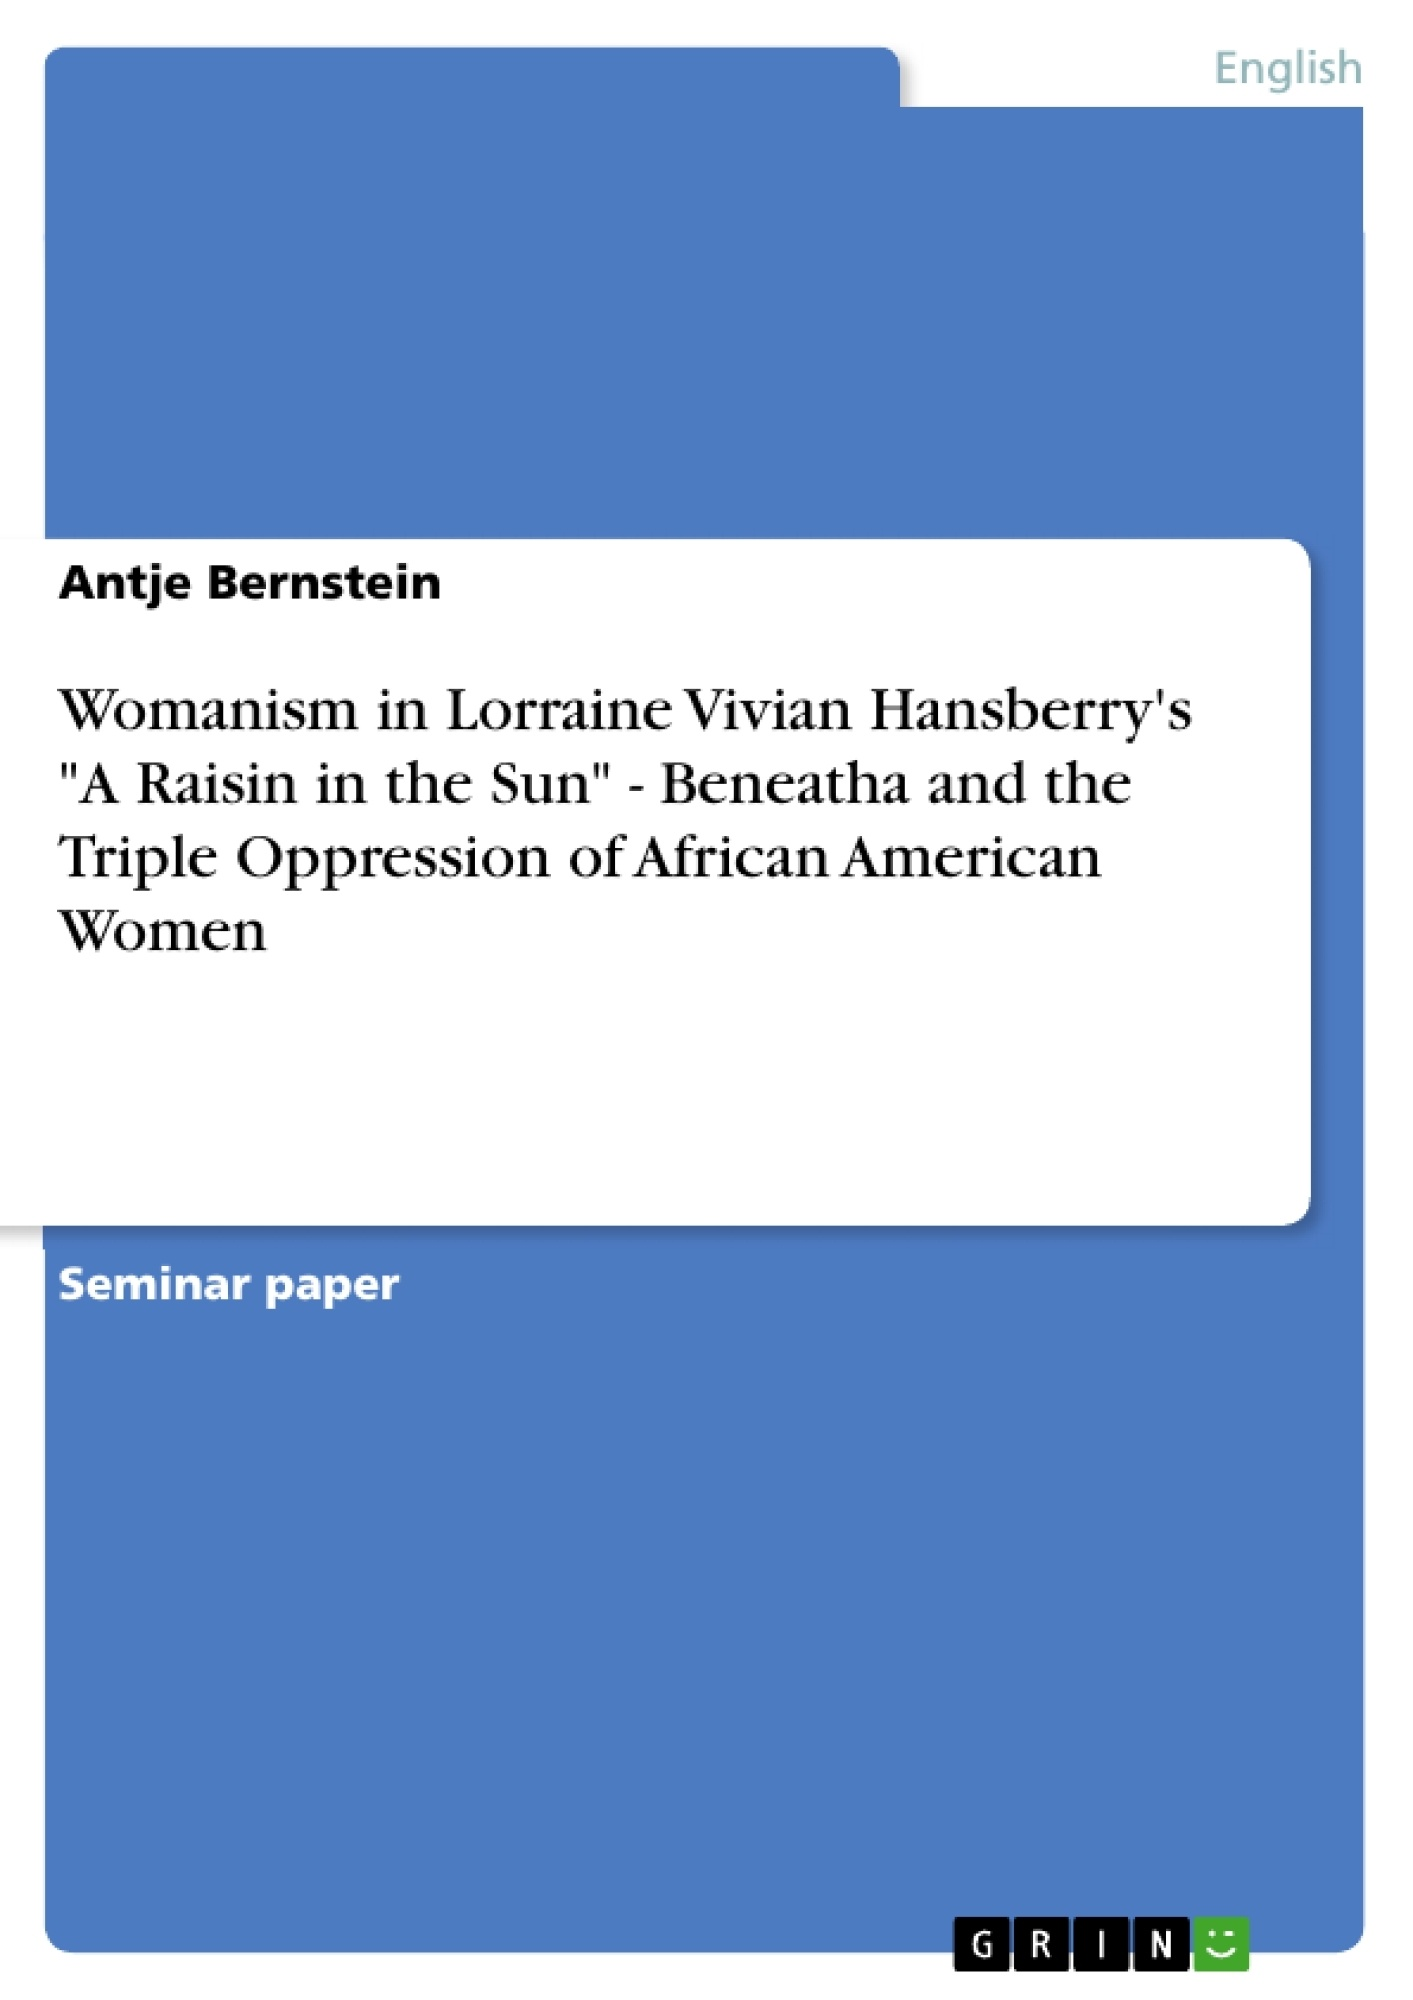 """Title: Womanism in Lorraine Vivian Hansberry's """"A Raisin in the Sun"""" - Beneatha and the Triple Oppression of African American Women"""